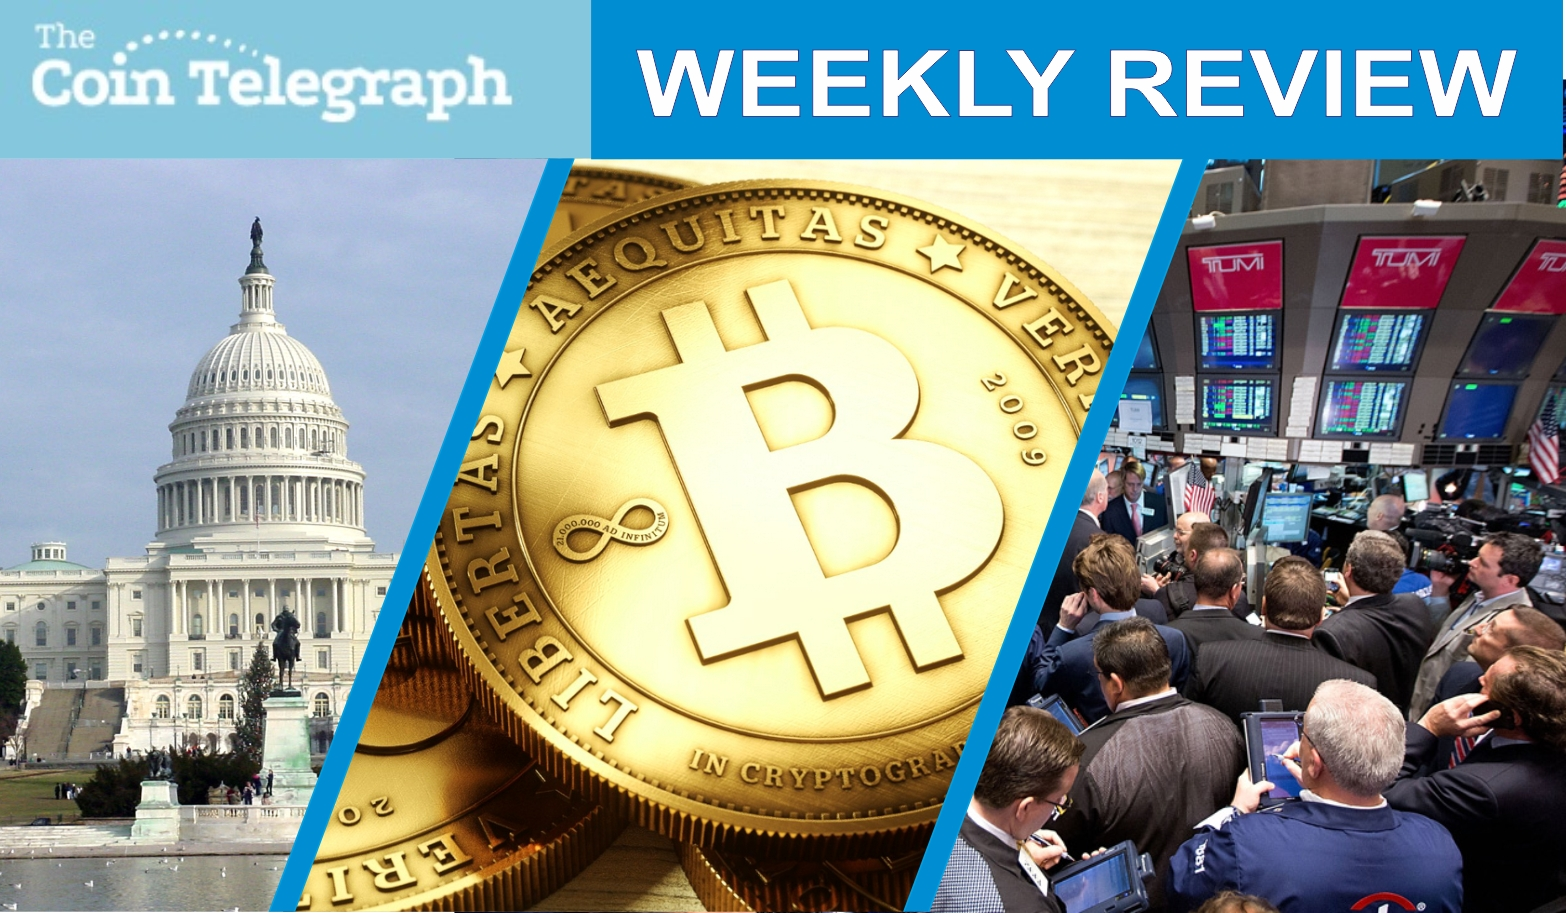 Cointelegraph Weekly Review (Jan. 27-31)